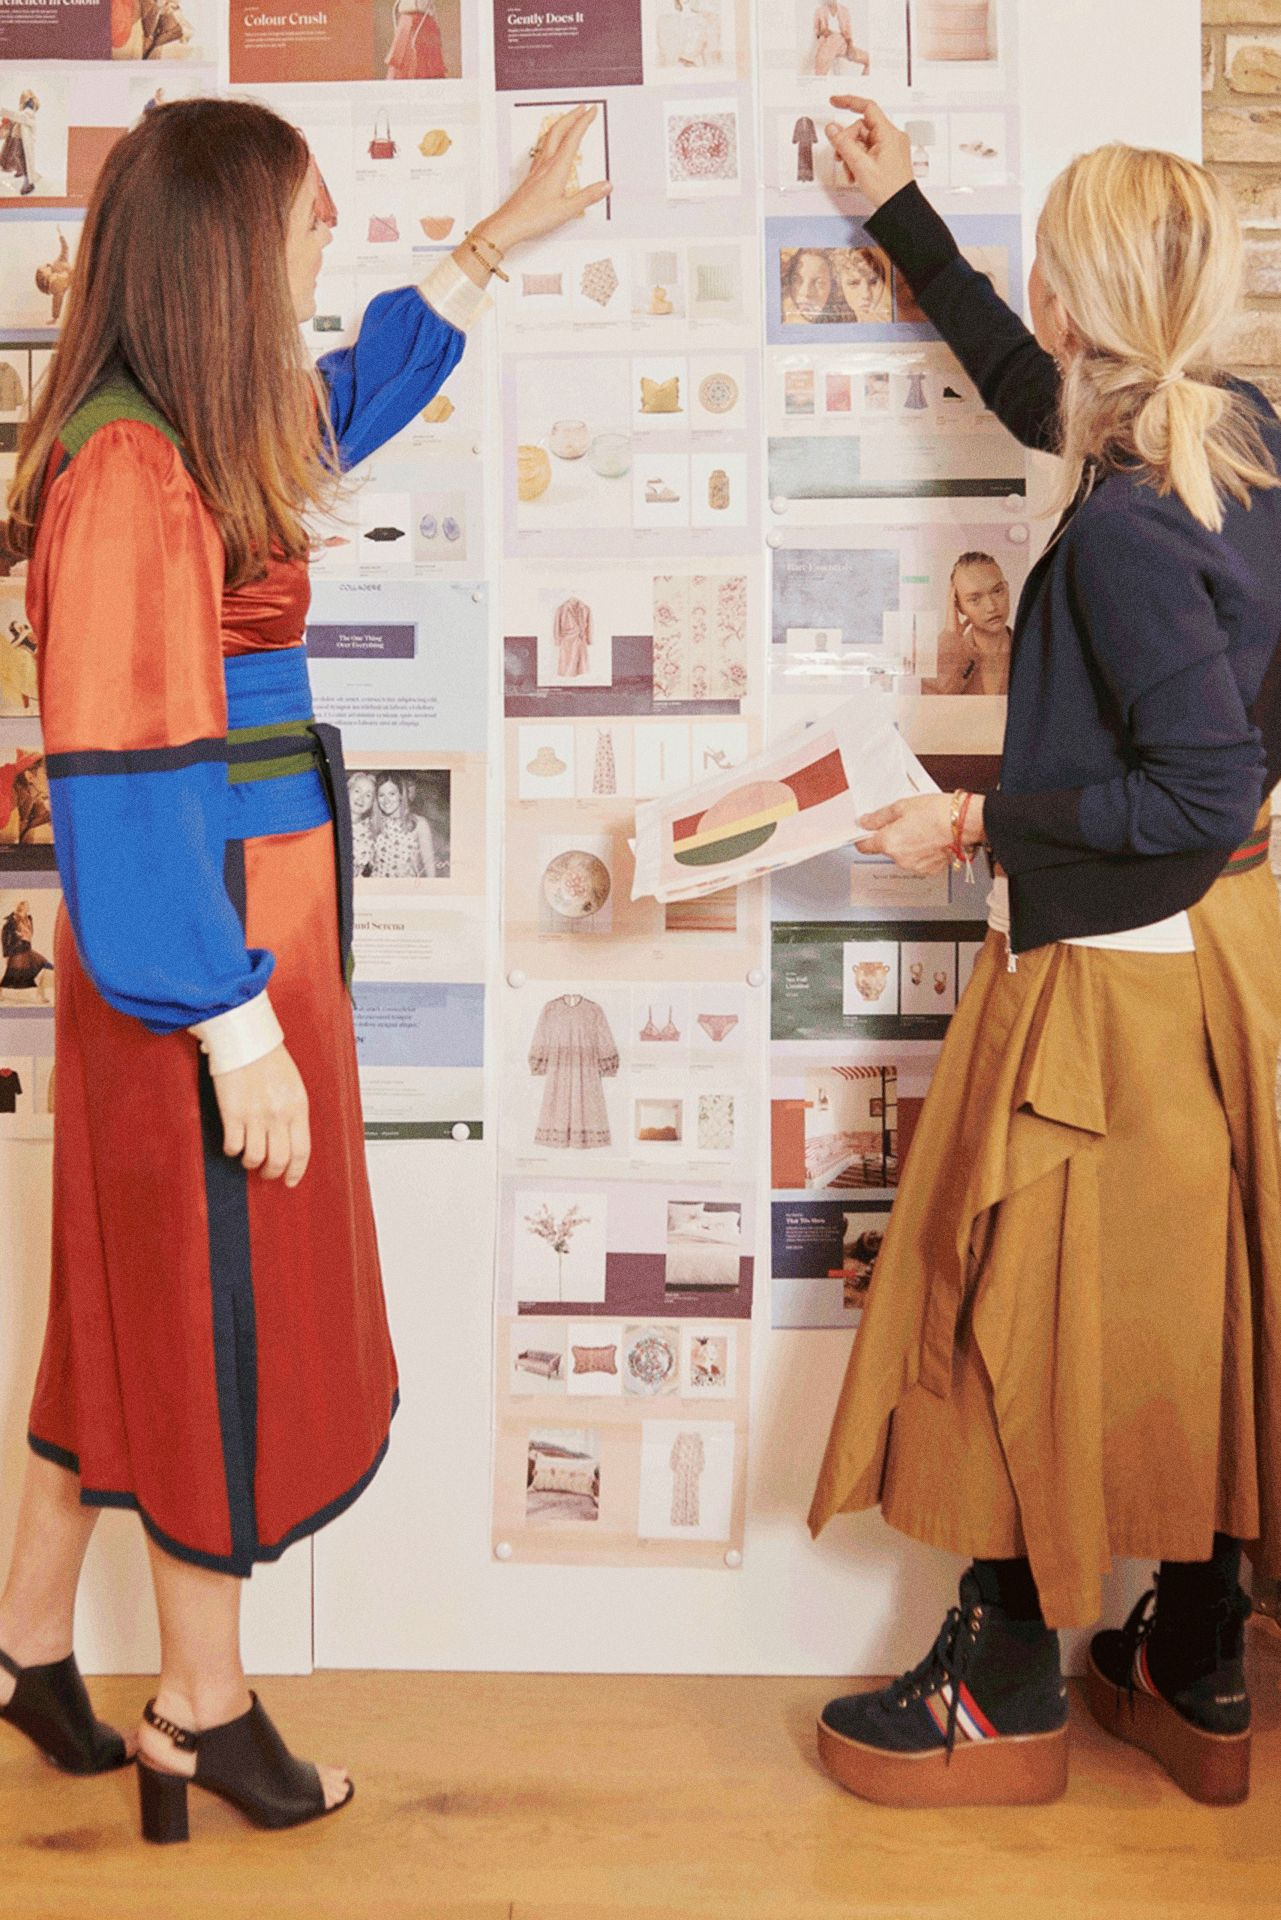 Collagerie founders Serena Hood and Lucinda Chambers working on a moodboard. Photograph by Eva Schwank.